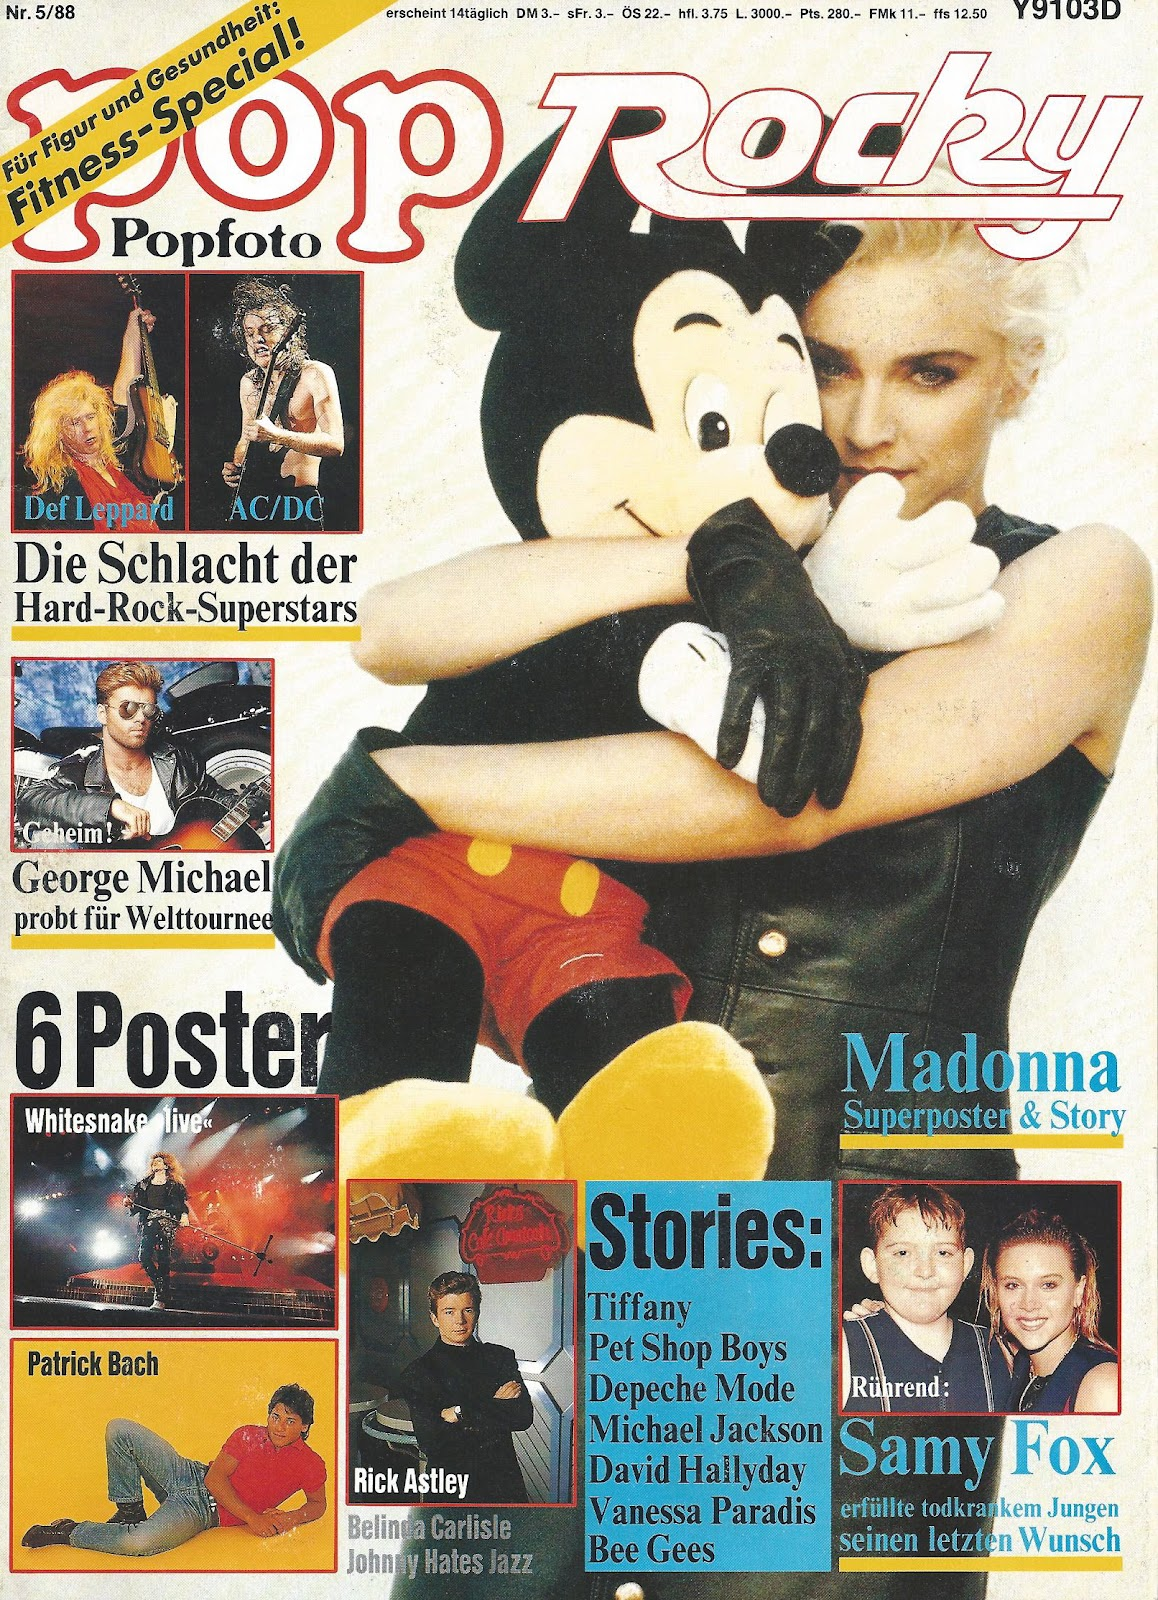 Magazines Collection Fashion Nails 4 Et 5: MADMUSIC1: My Madonna Collection: MAGAZINE: Pop Rocky